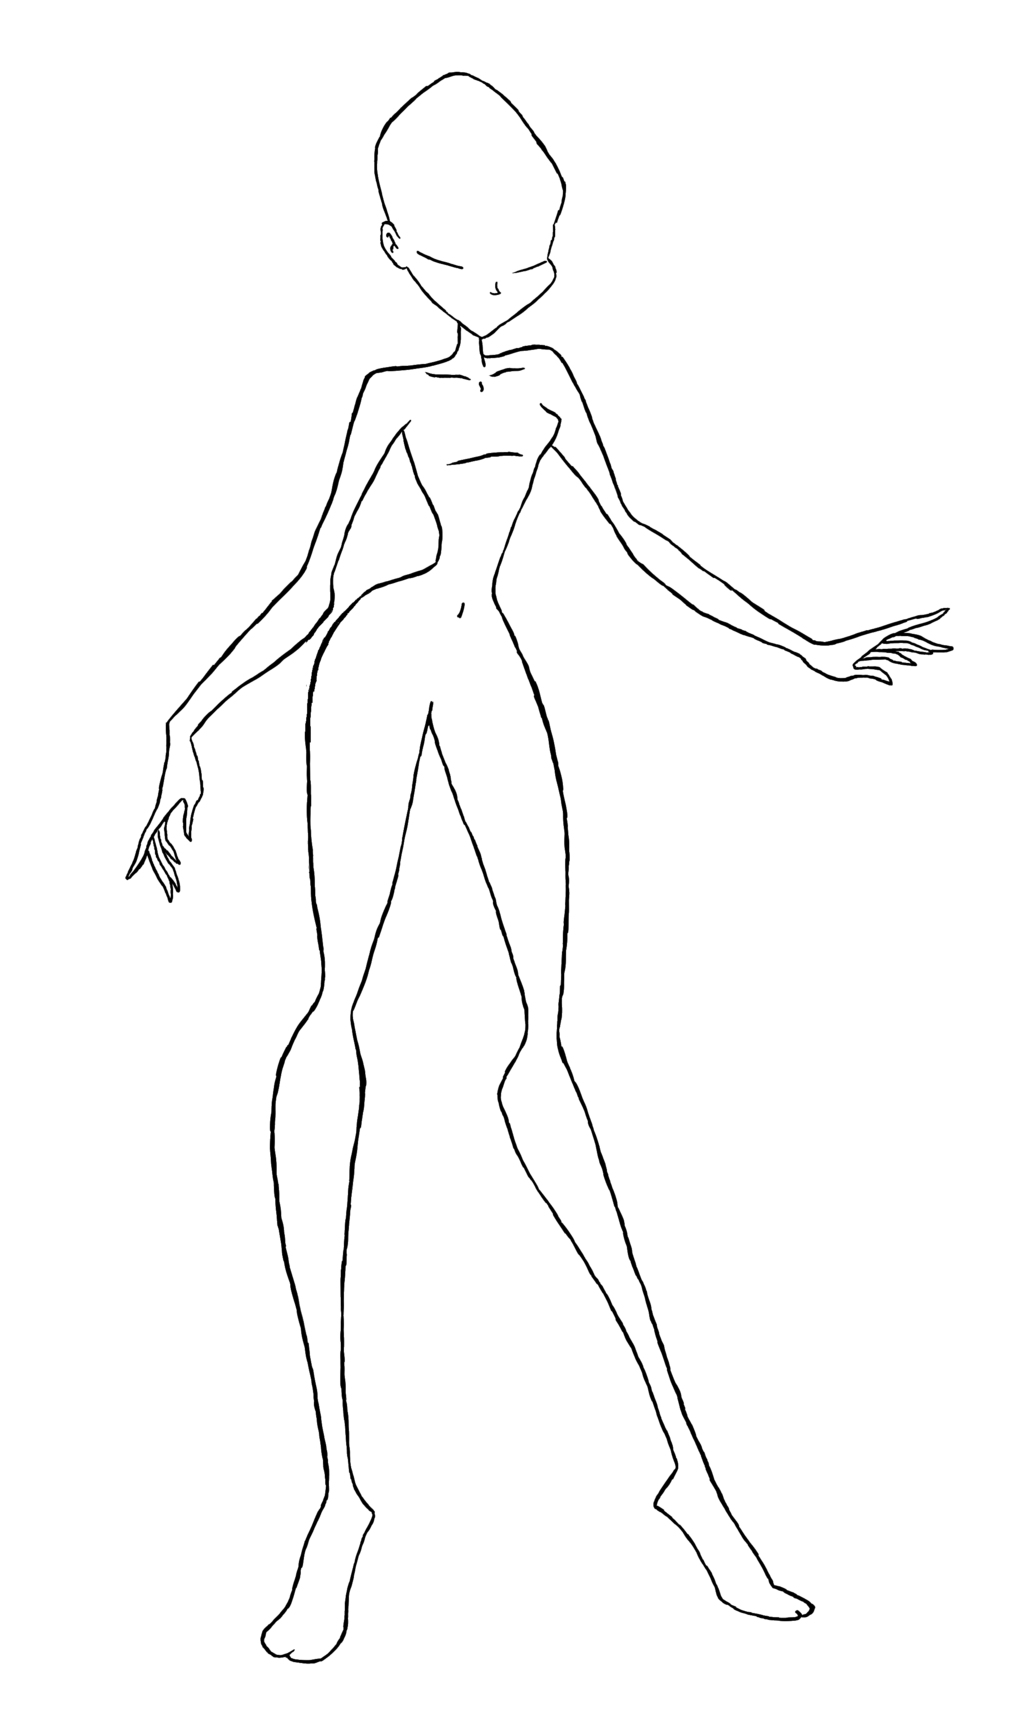 Anima drawing human. Female body at getdrawings